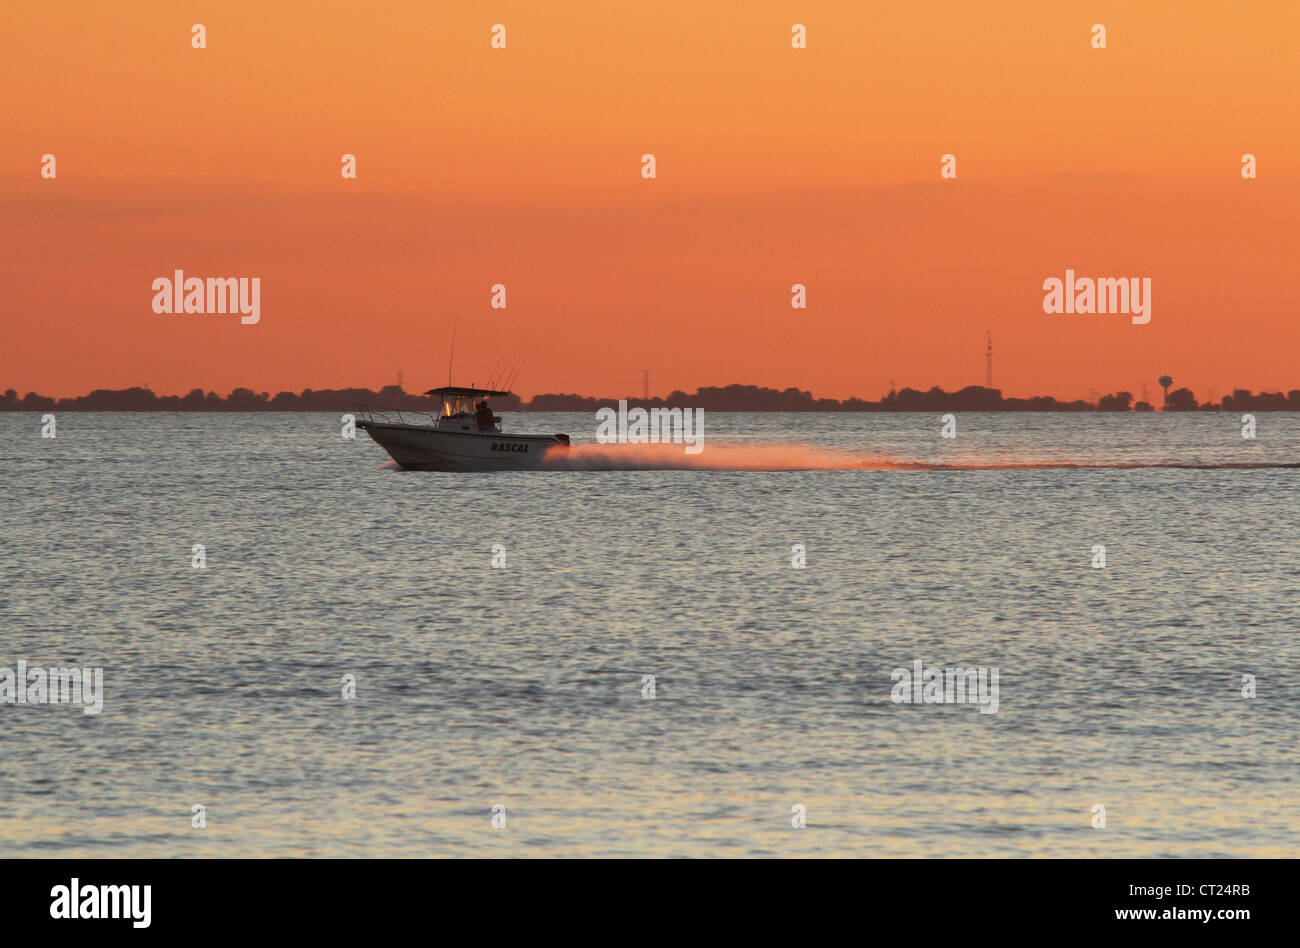 Lake Erie Sunset with Boat. - Stock Image